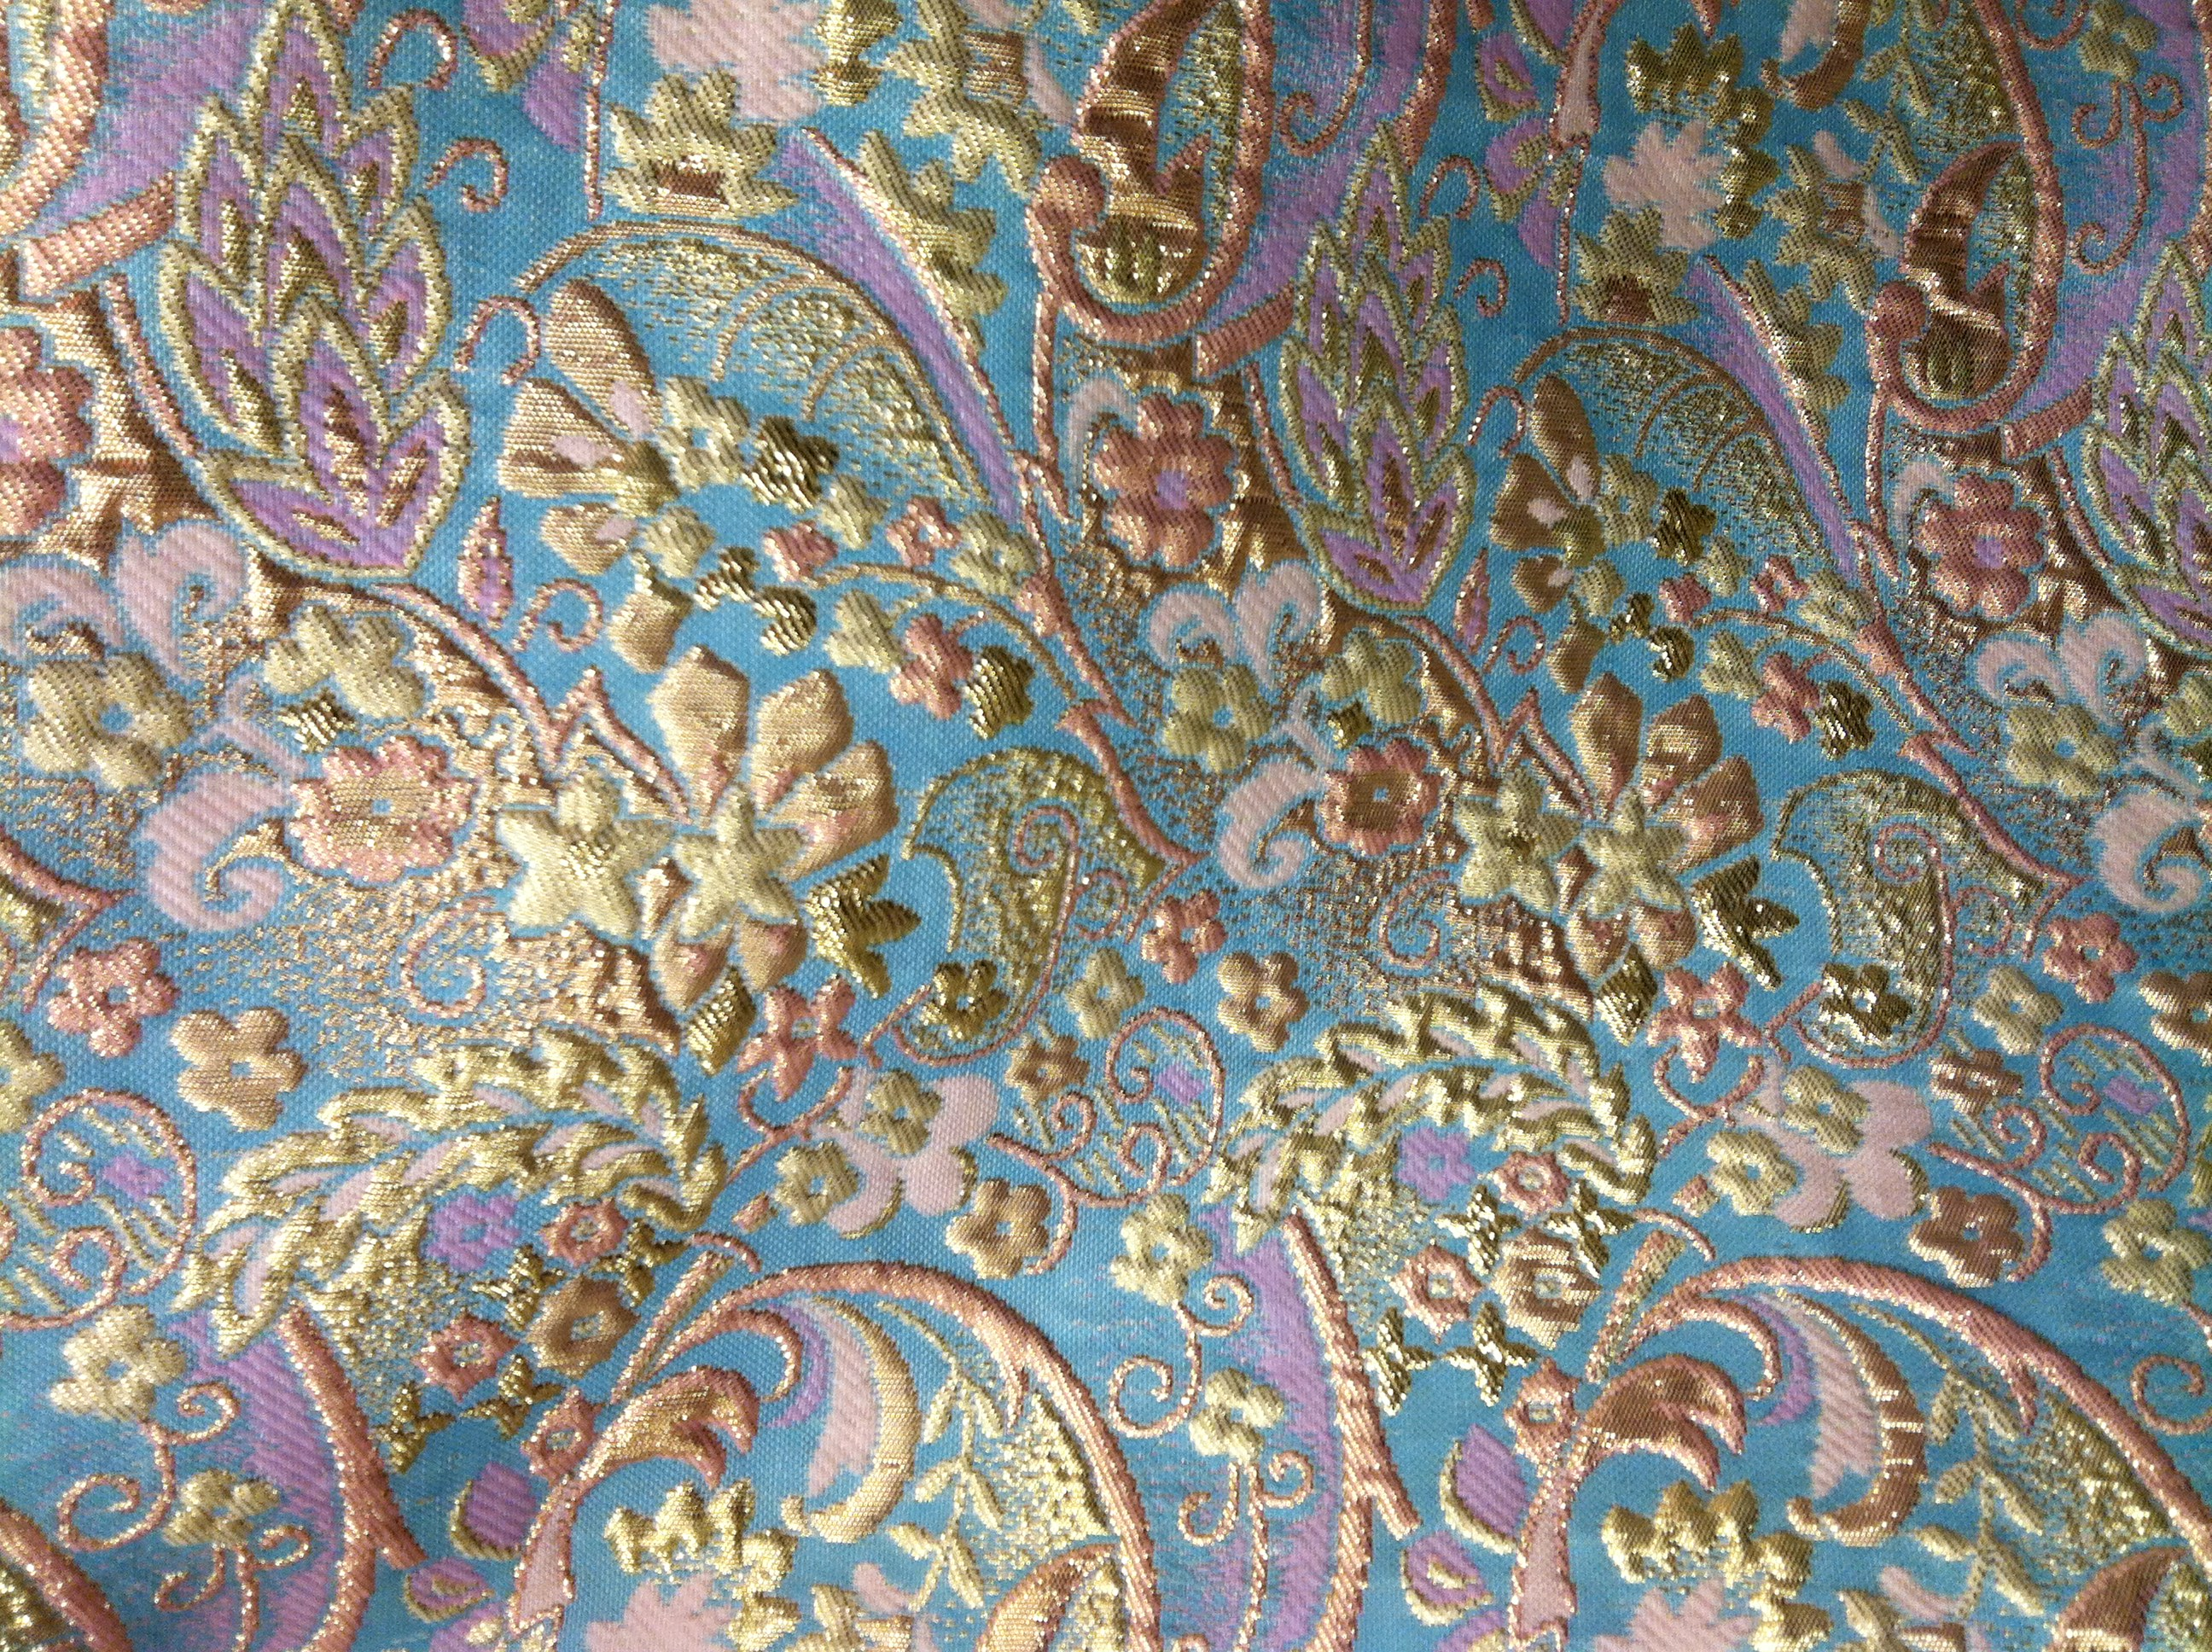 Brocade Fabric and Textile Inspiration Pinterest 2592x1936